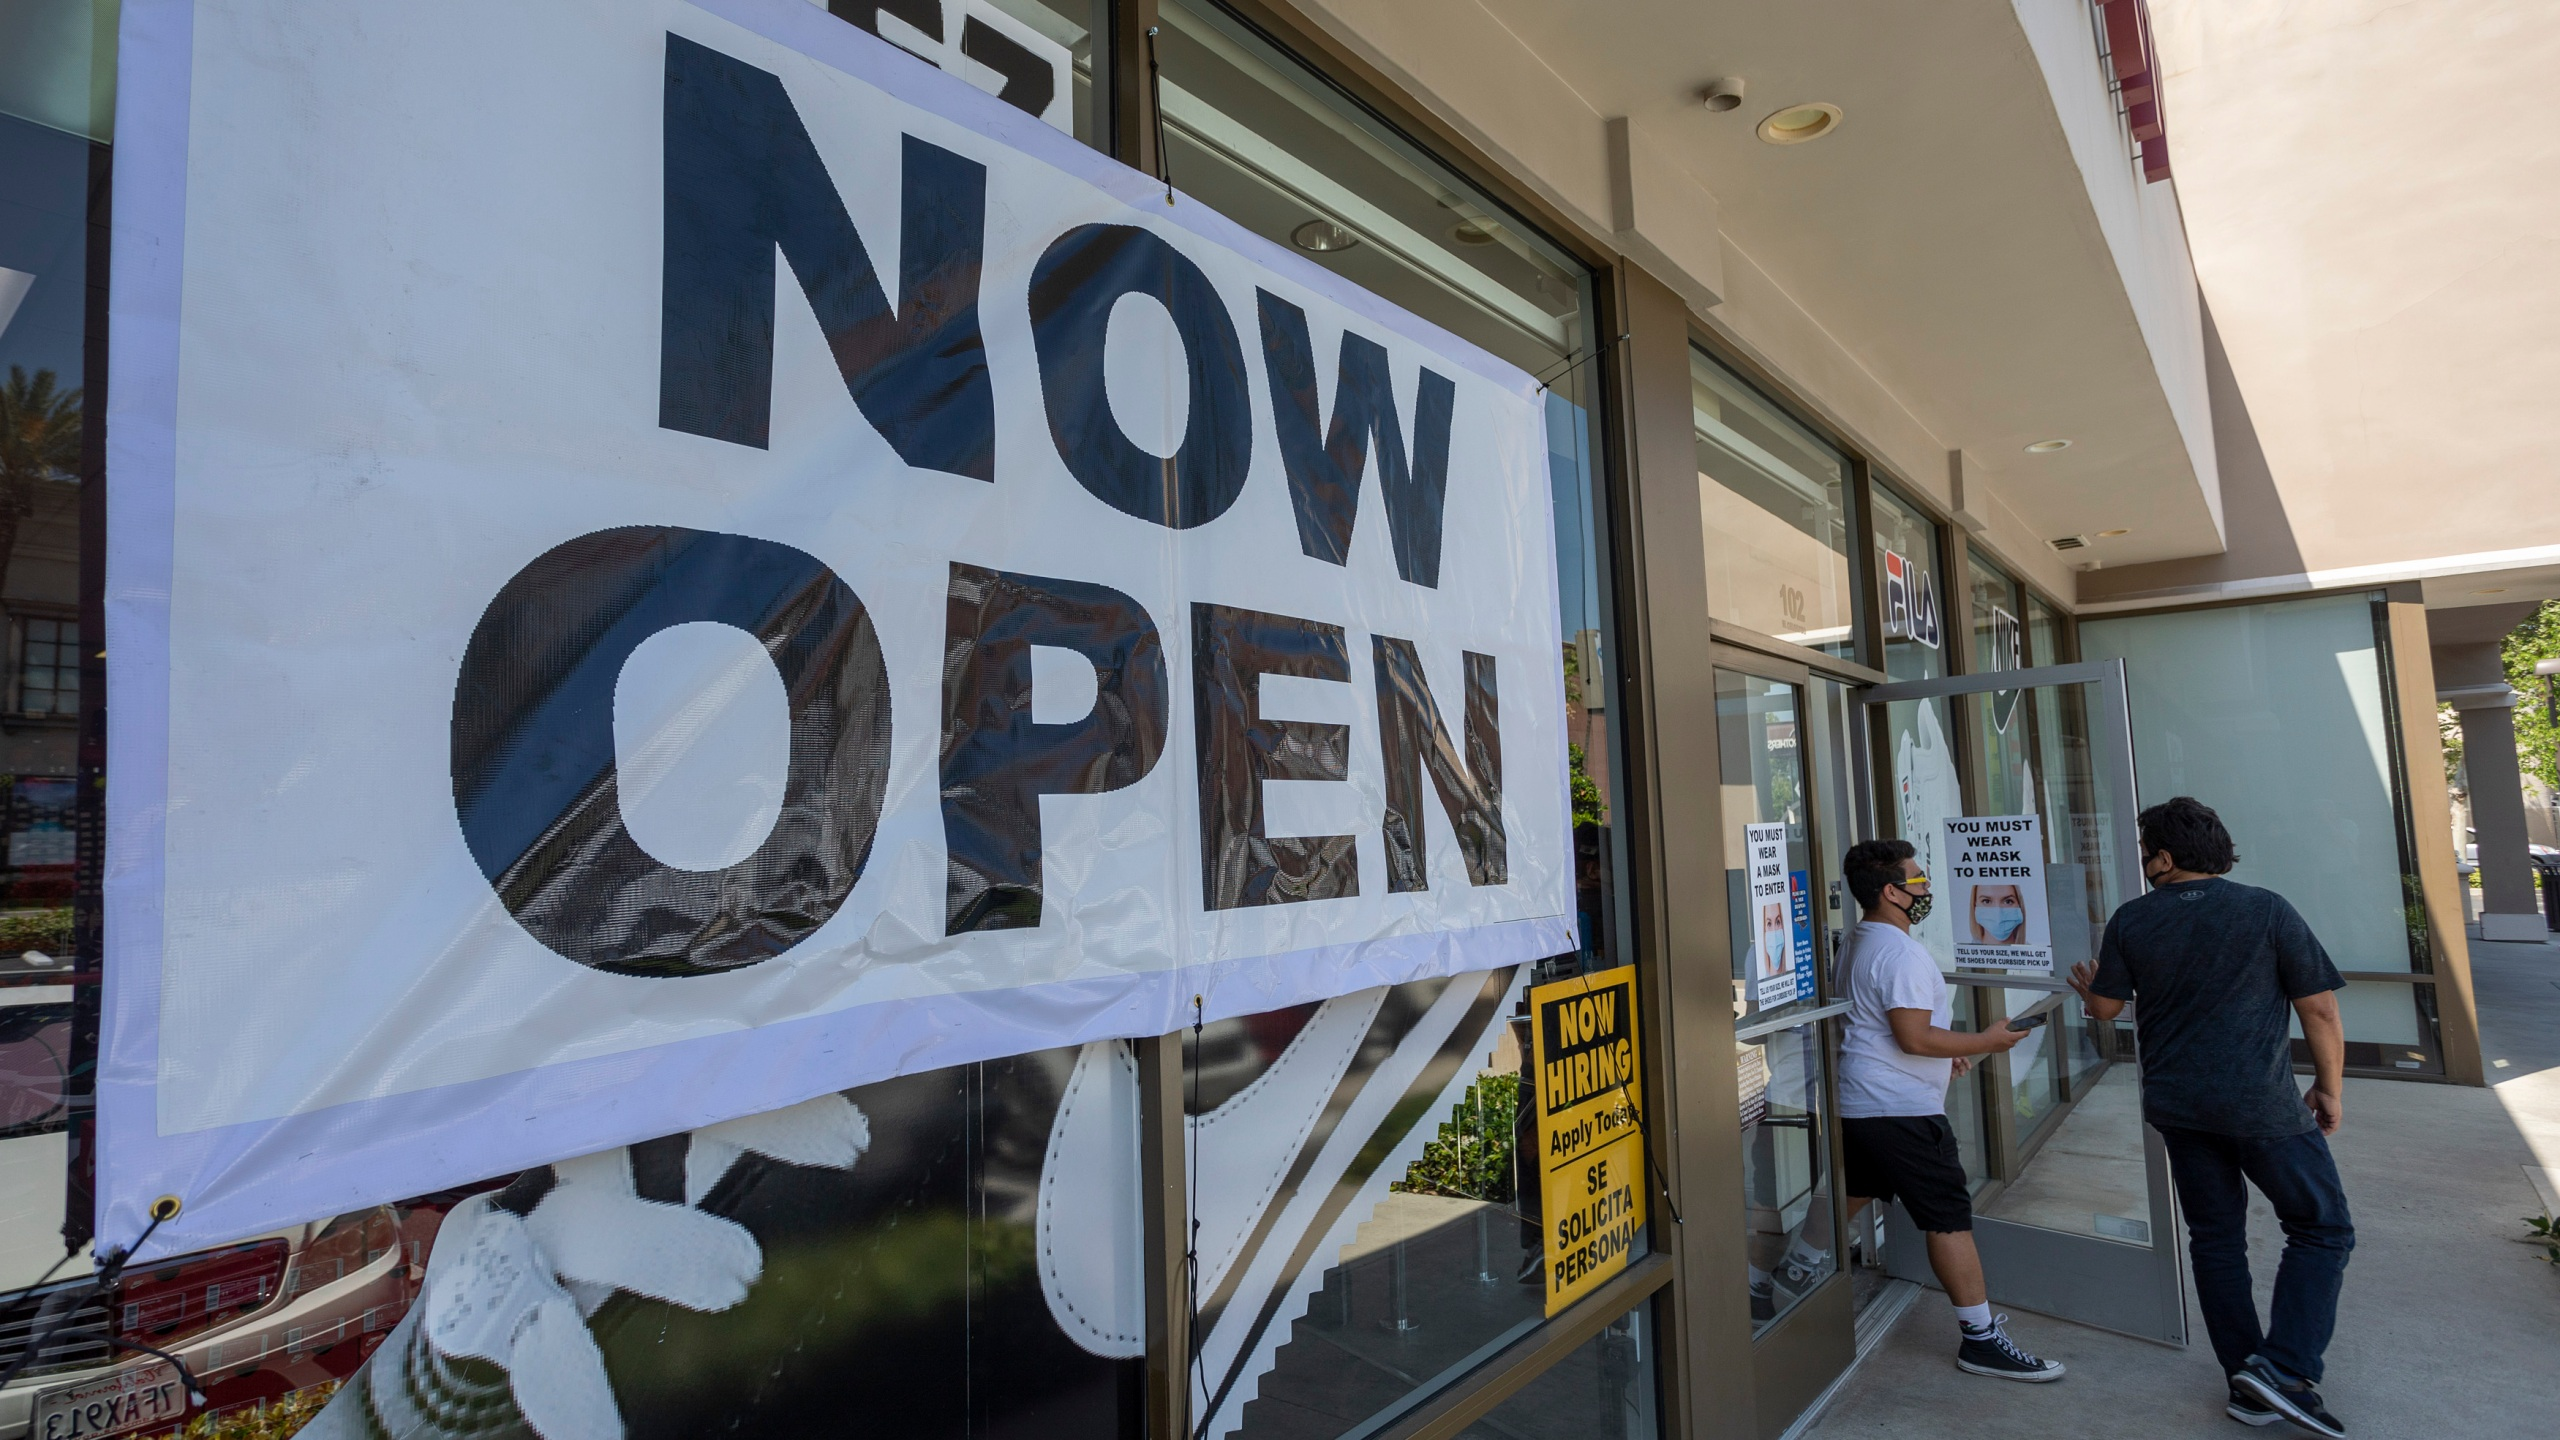 People exit a Shoe City store in Glendale as Los Angeles County retail businesses reopen while the COVID-19 pandemic continues on May 27, 2020. (David McNew/Getty Images)